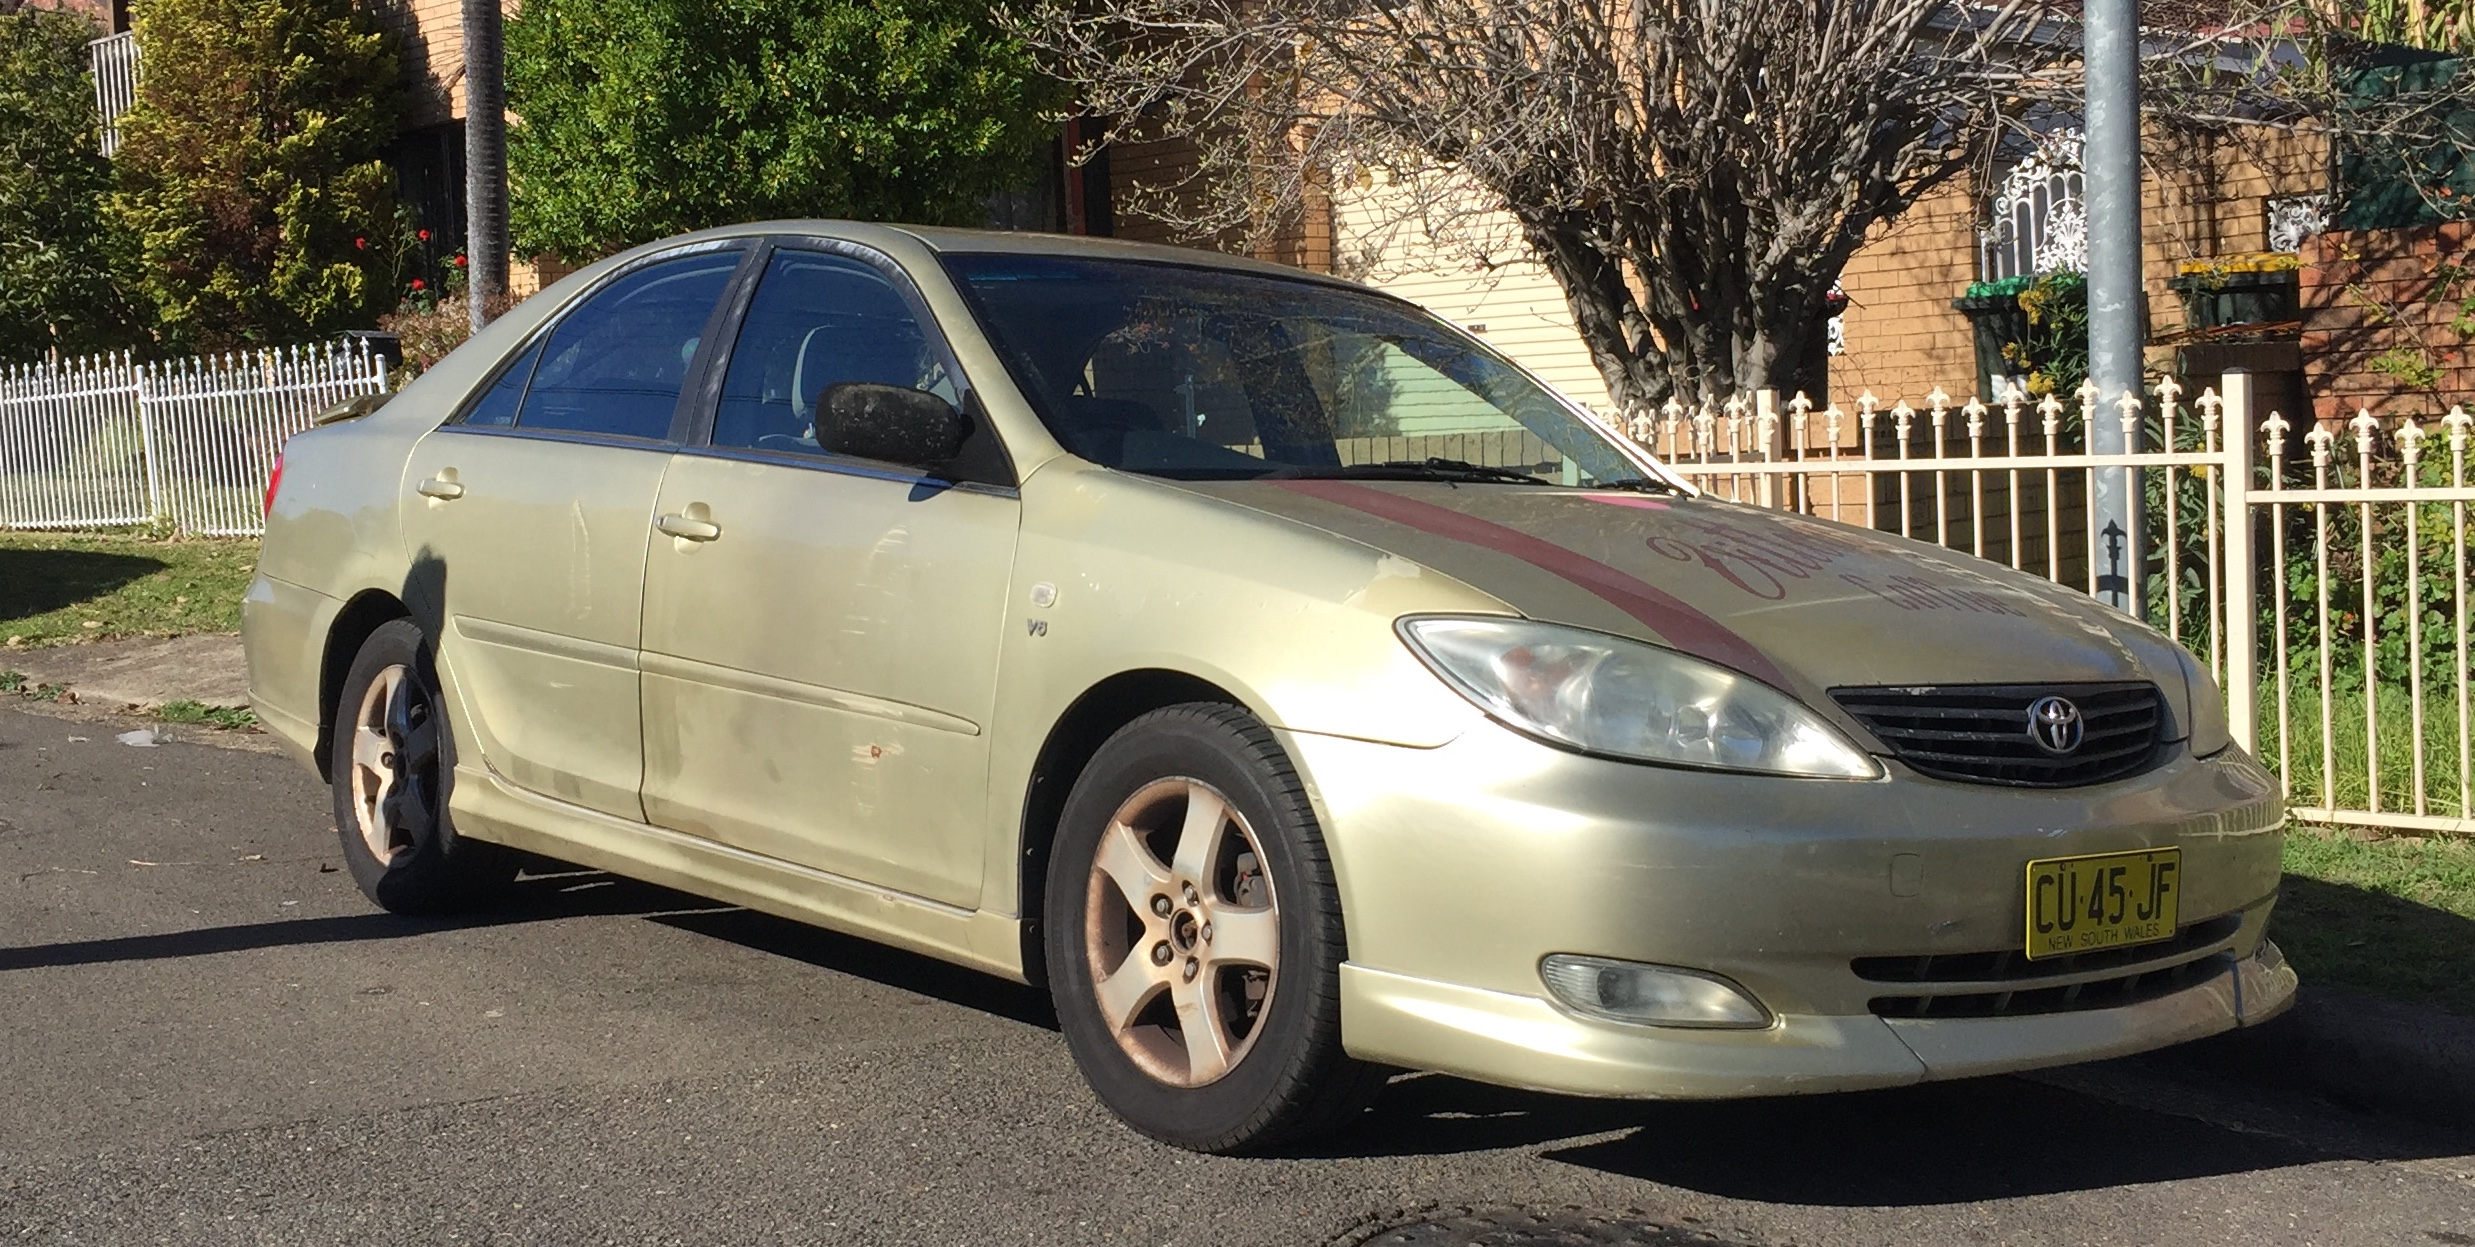 Picture of Quan's 2002 Toyota Camry